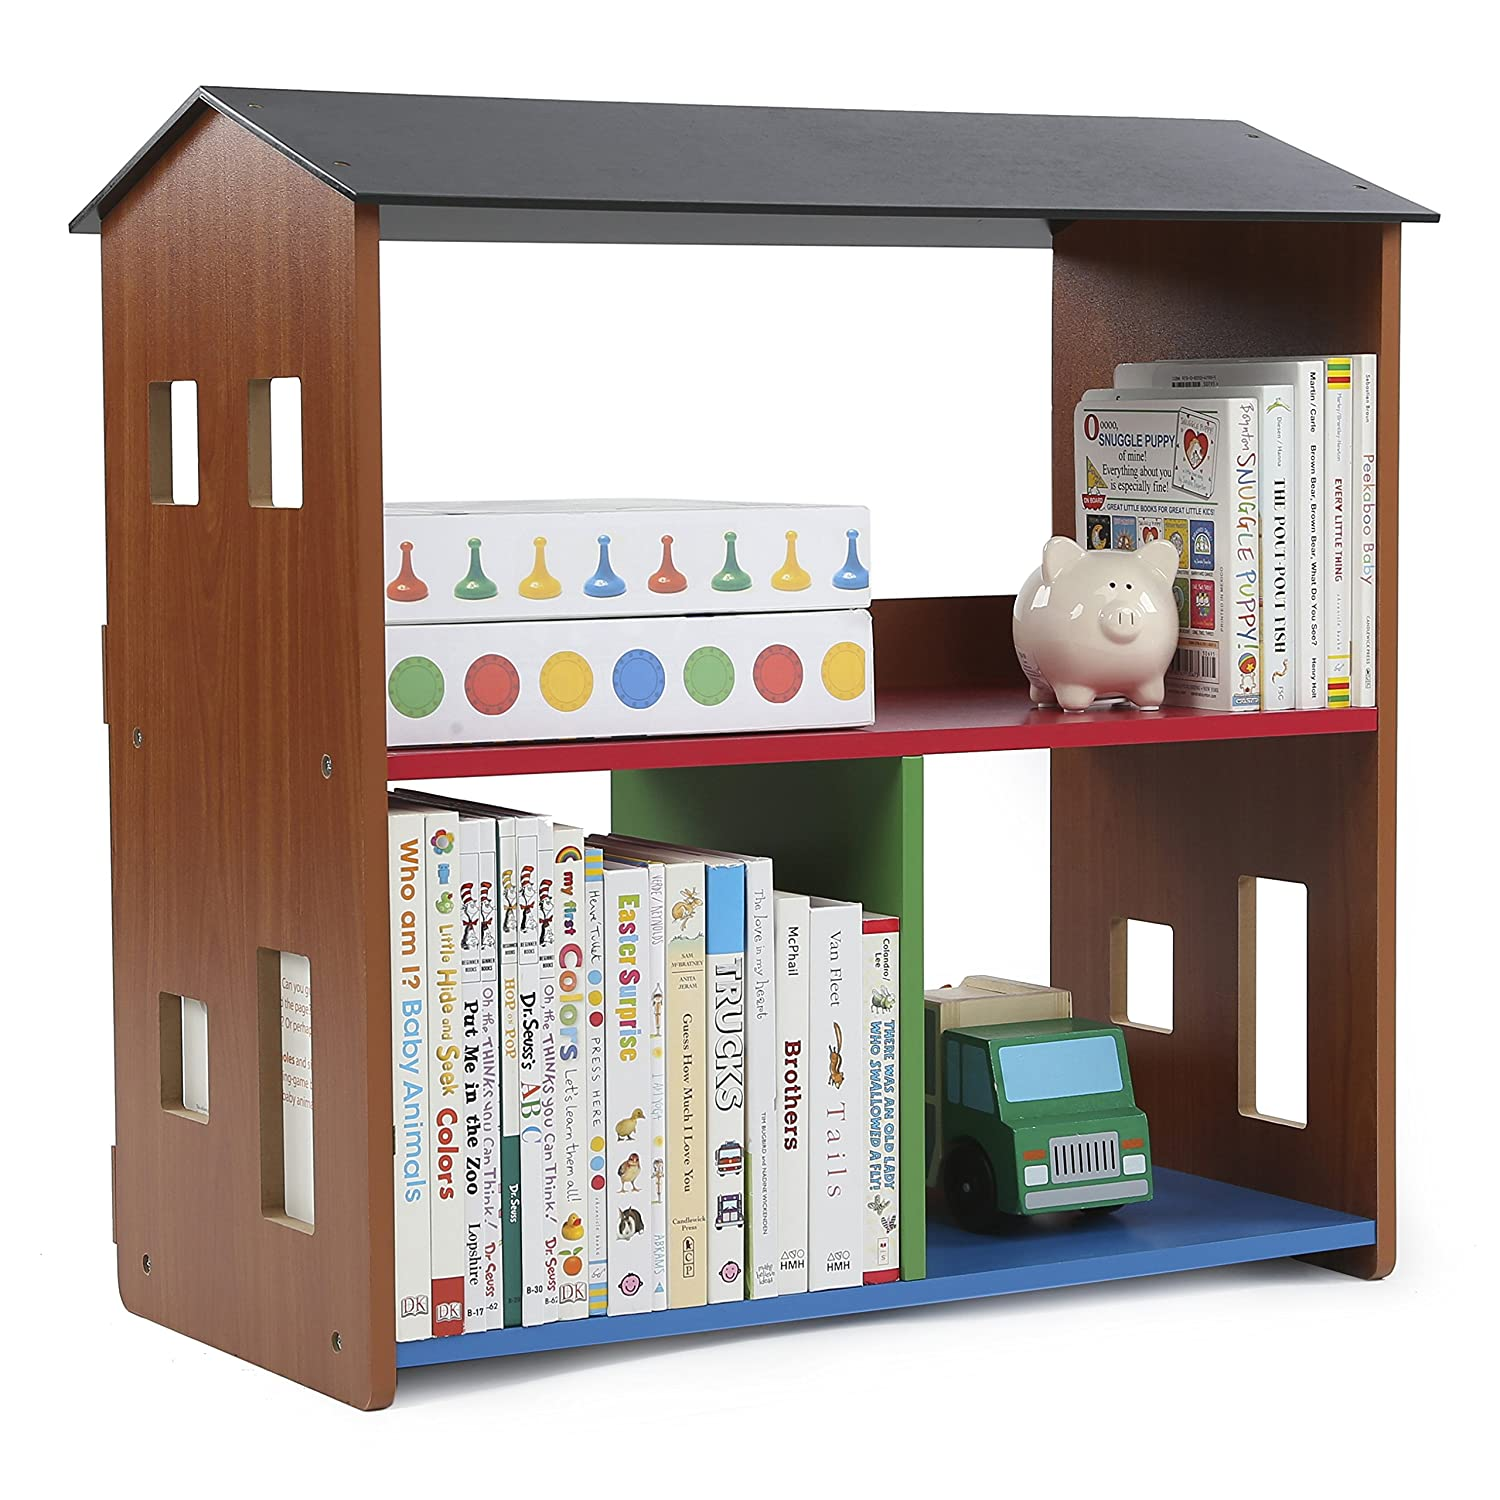 Amazon.com: Tot Tutors Playtime Bookcase and Toy Storage, Brown ...